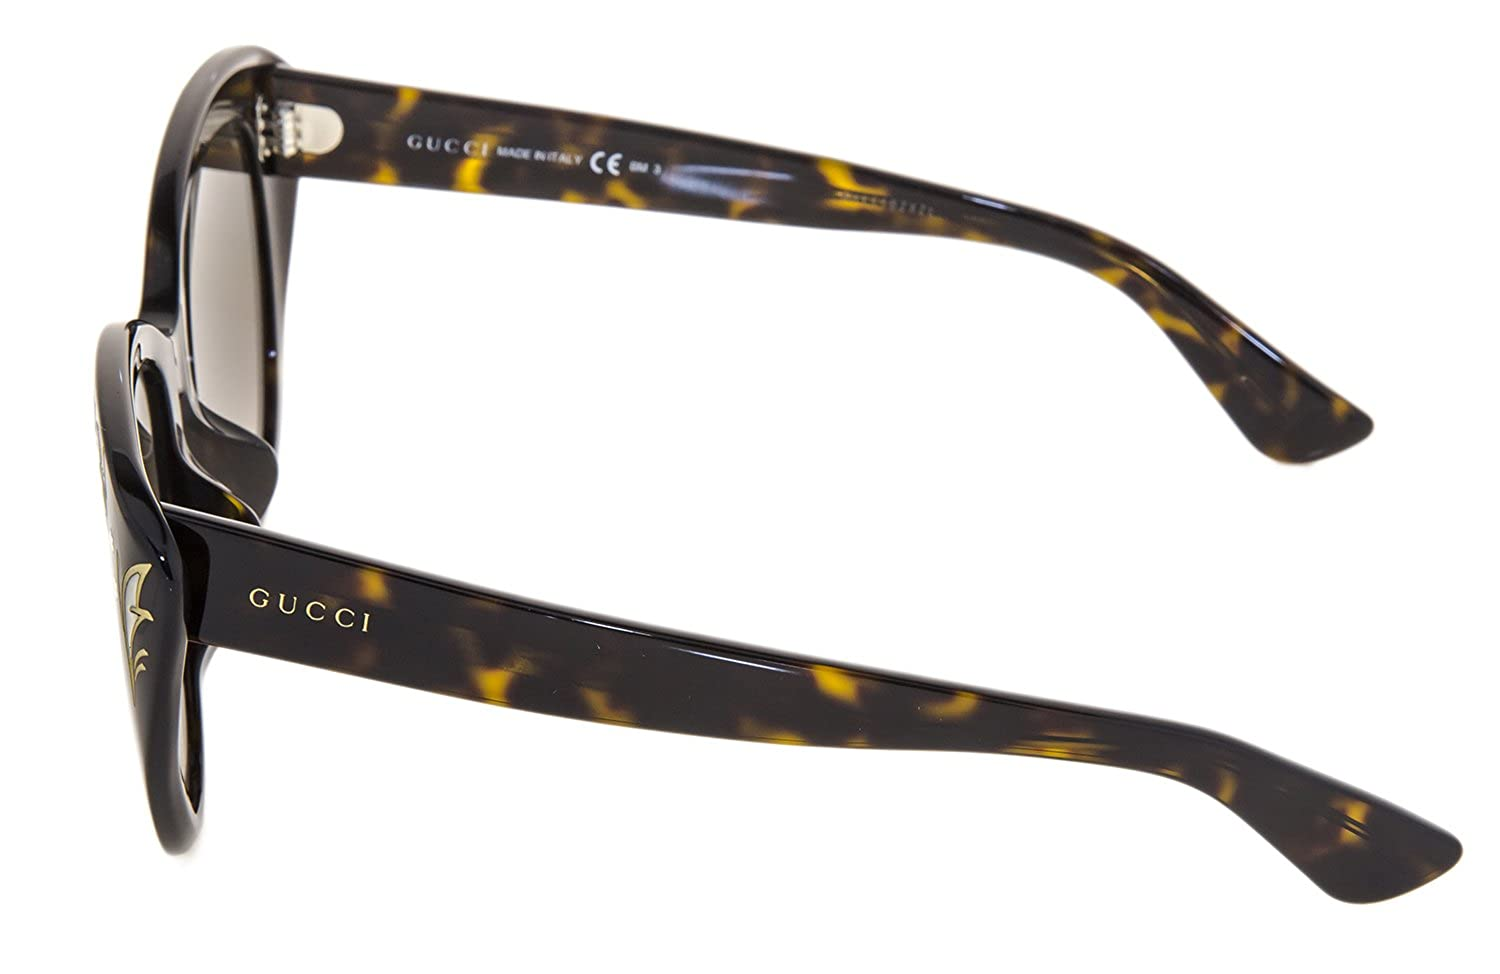 6249487c8 Amazon.com: GUCCI GG3828/F/S Brown Havana Mother Of Pearl Oversized Cat Eye  Sunglasses ASIAN FIT 3828: Clothing